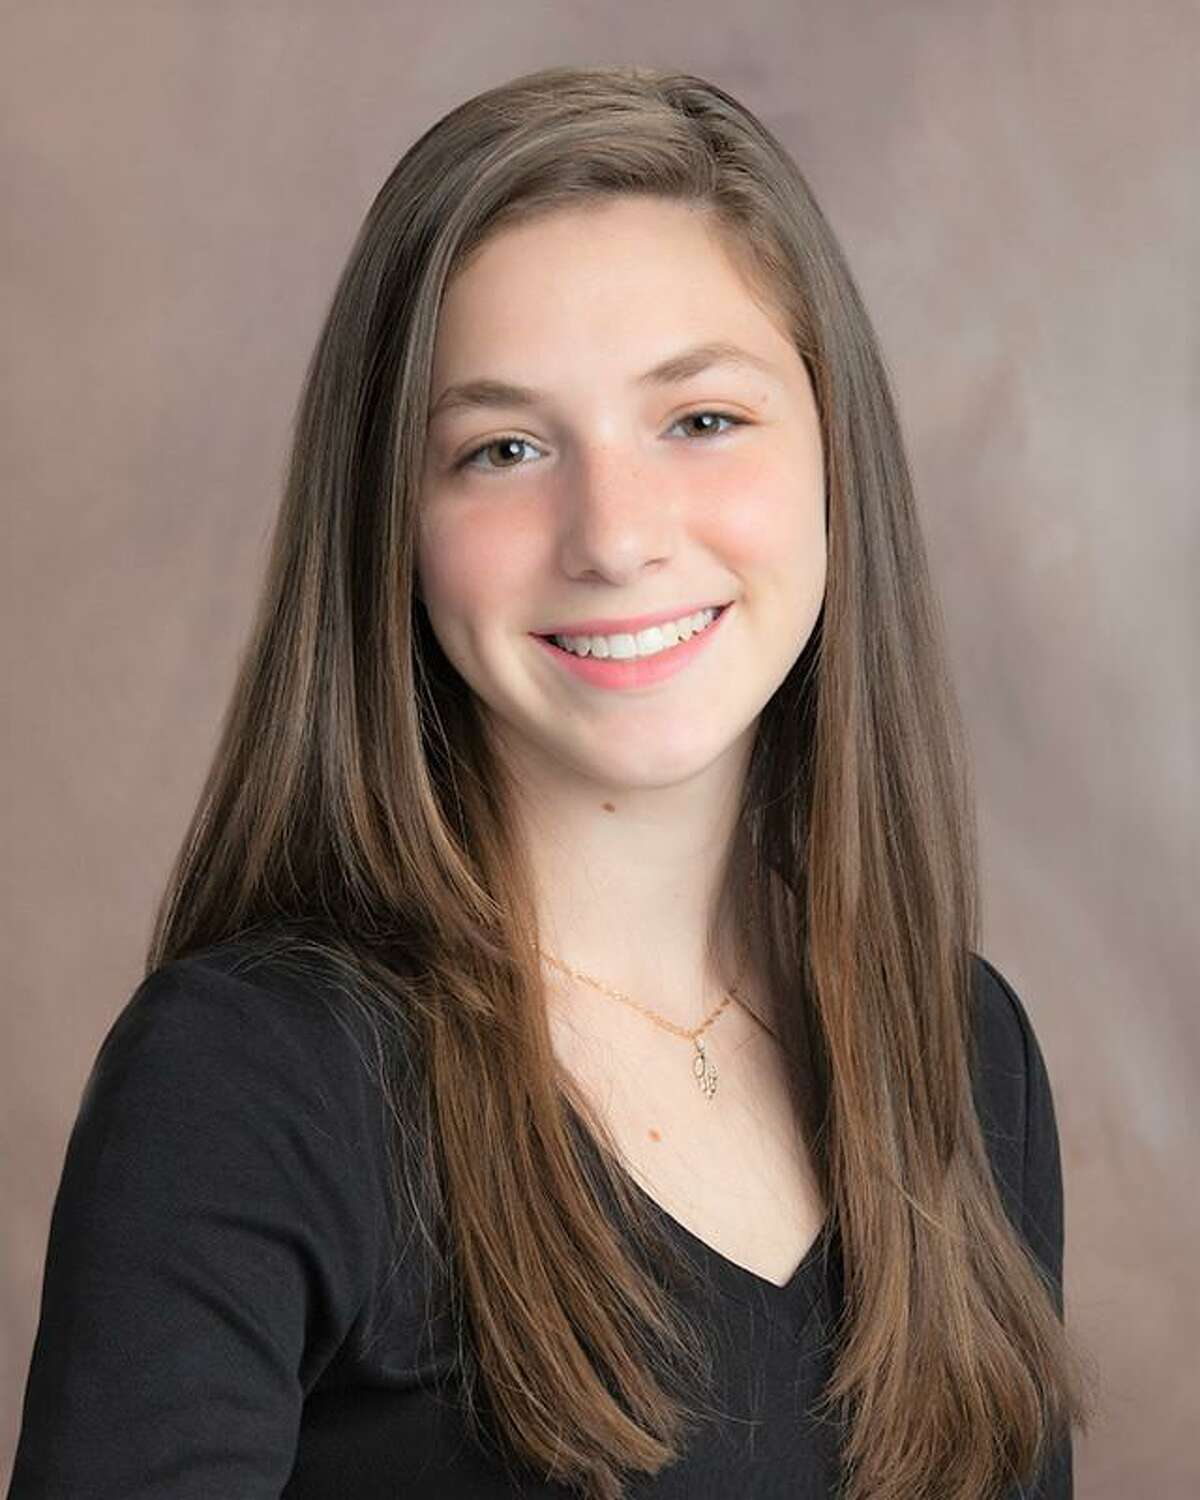 The Mercy High School class of 2021 valedictorian is Kaila Lujambio of Wallingford.